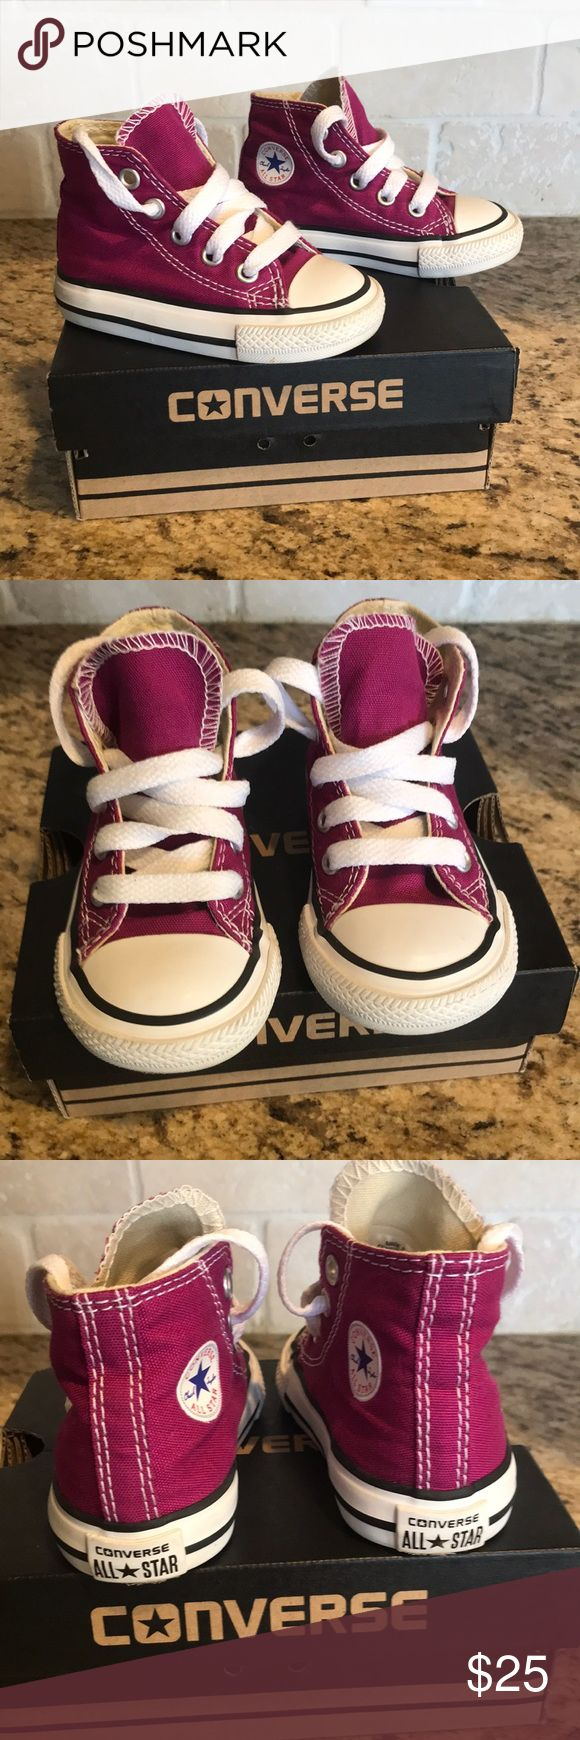 Like NEW! Toddler Converse Excellent condition. Like new! Only worn for a few hours. Pretty purple converse chuck Taylor's. High top. No trades. Bundle for discount. Converse Shoes